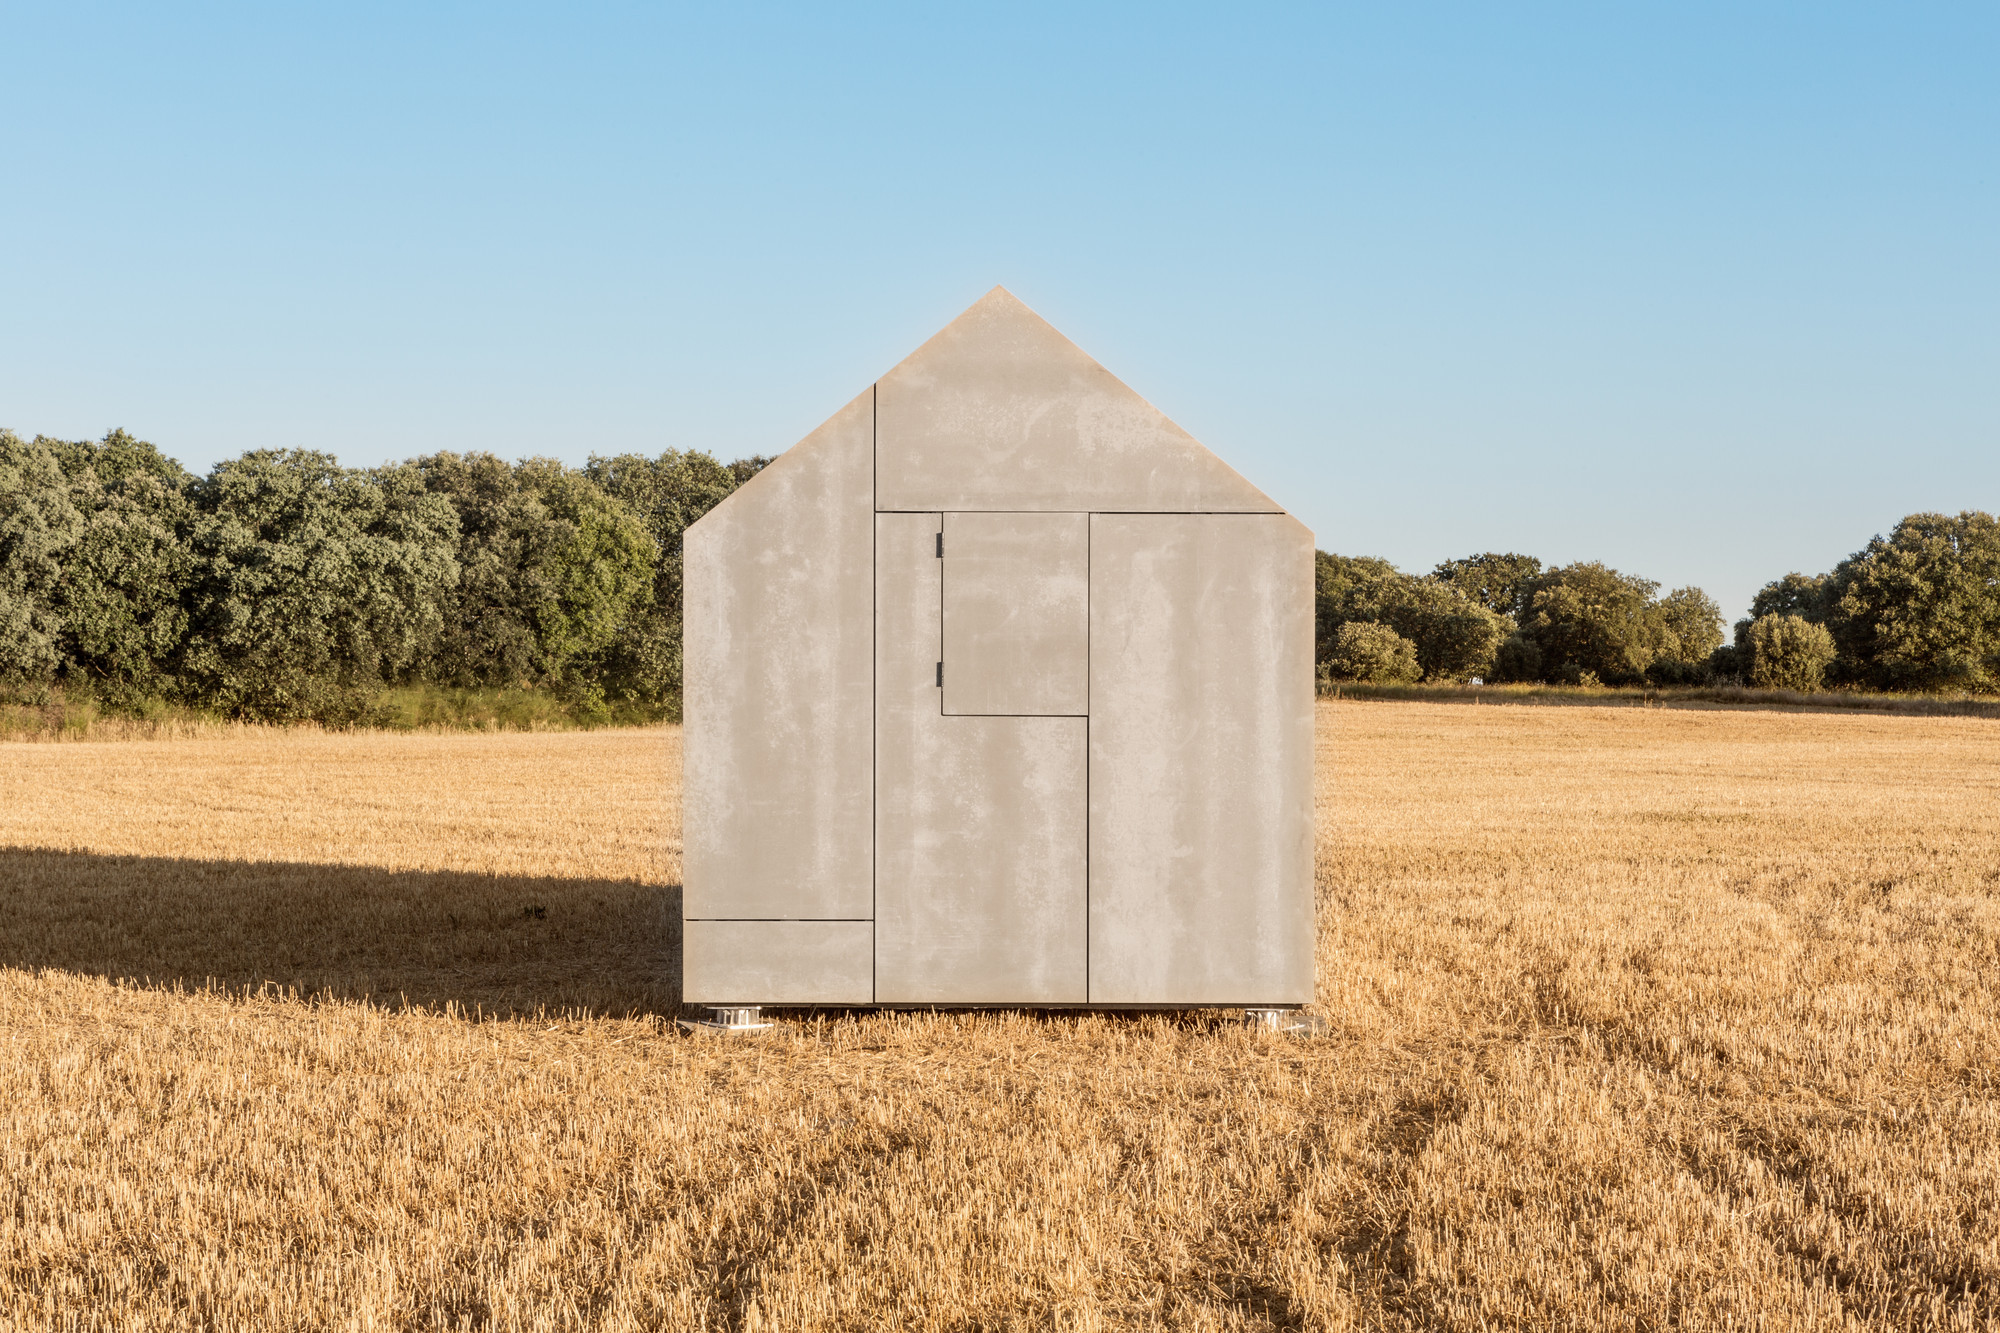 6 Tips for Designing and Building a Tiny House